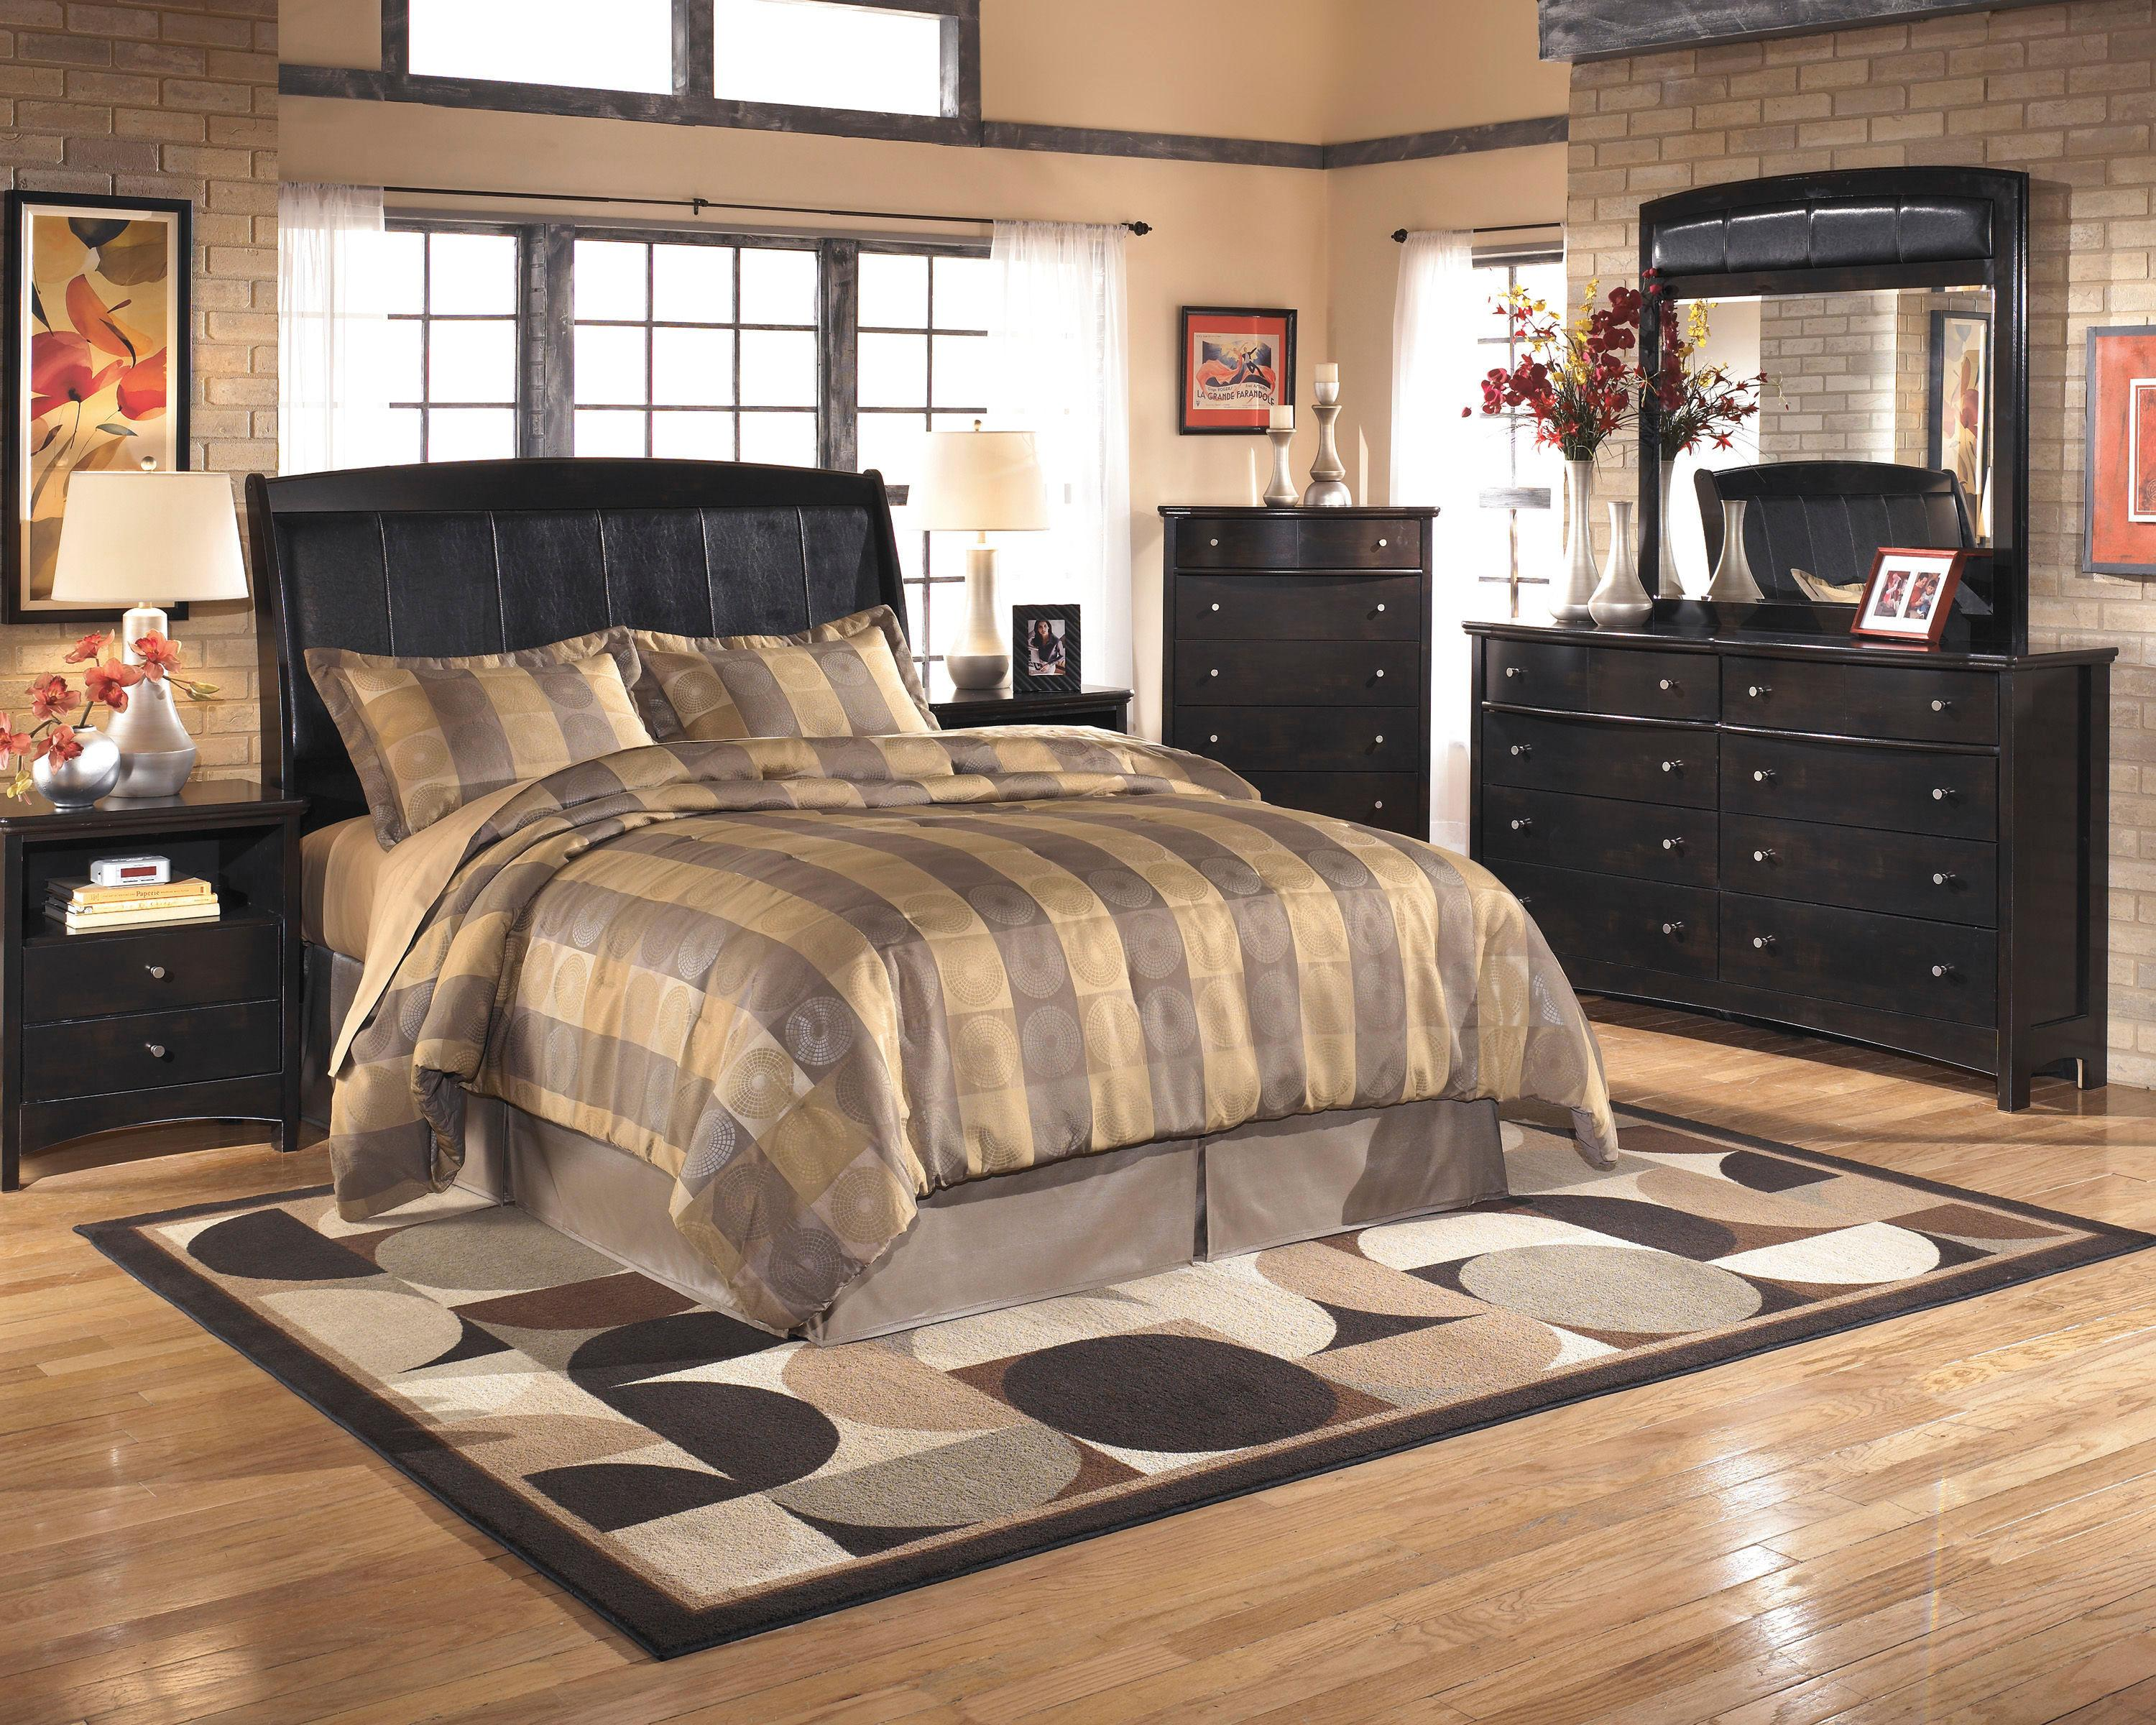 Ashley Homestore Outlet Antioch Tennessee Tn